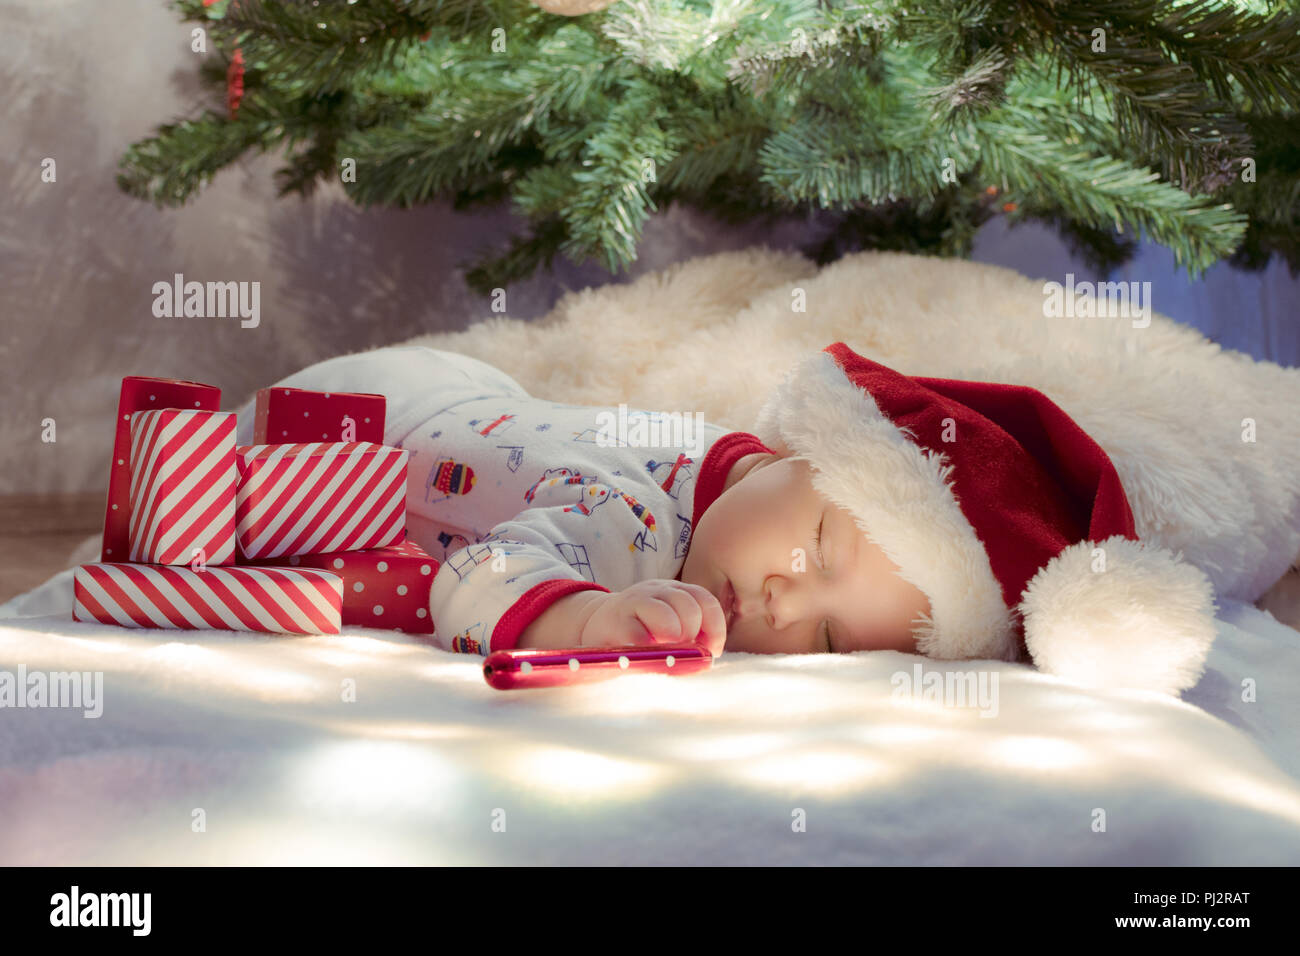 Cute newborn baby sleeping under Christmas tree near red gifts wearing Santa Claus hat. - Stock Image